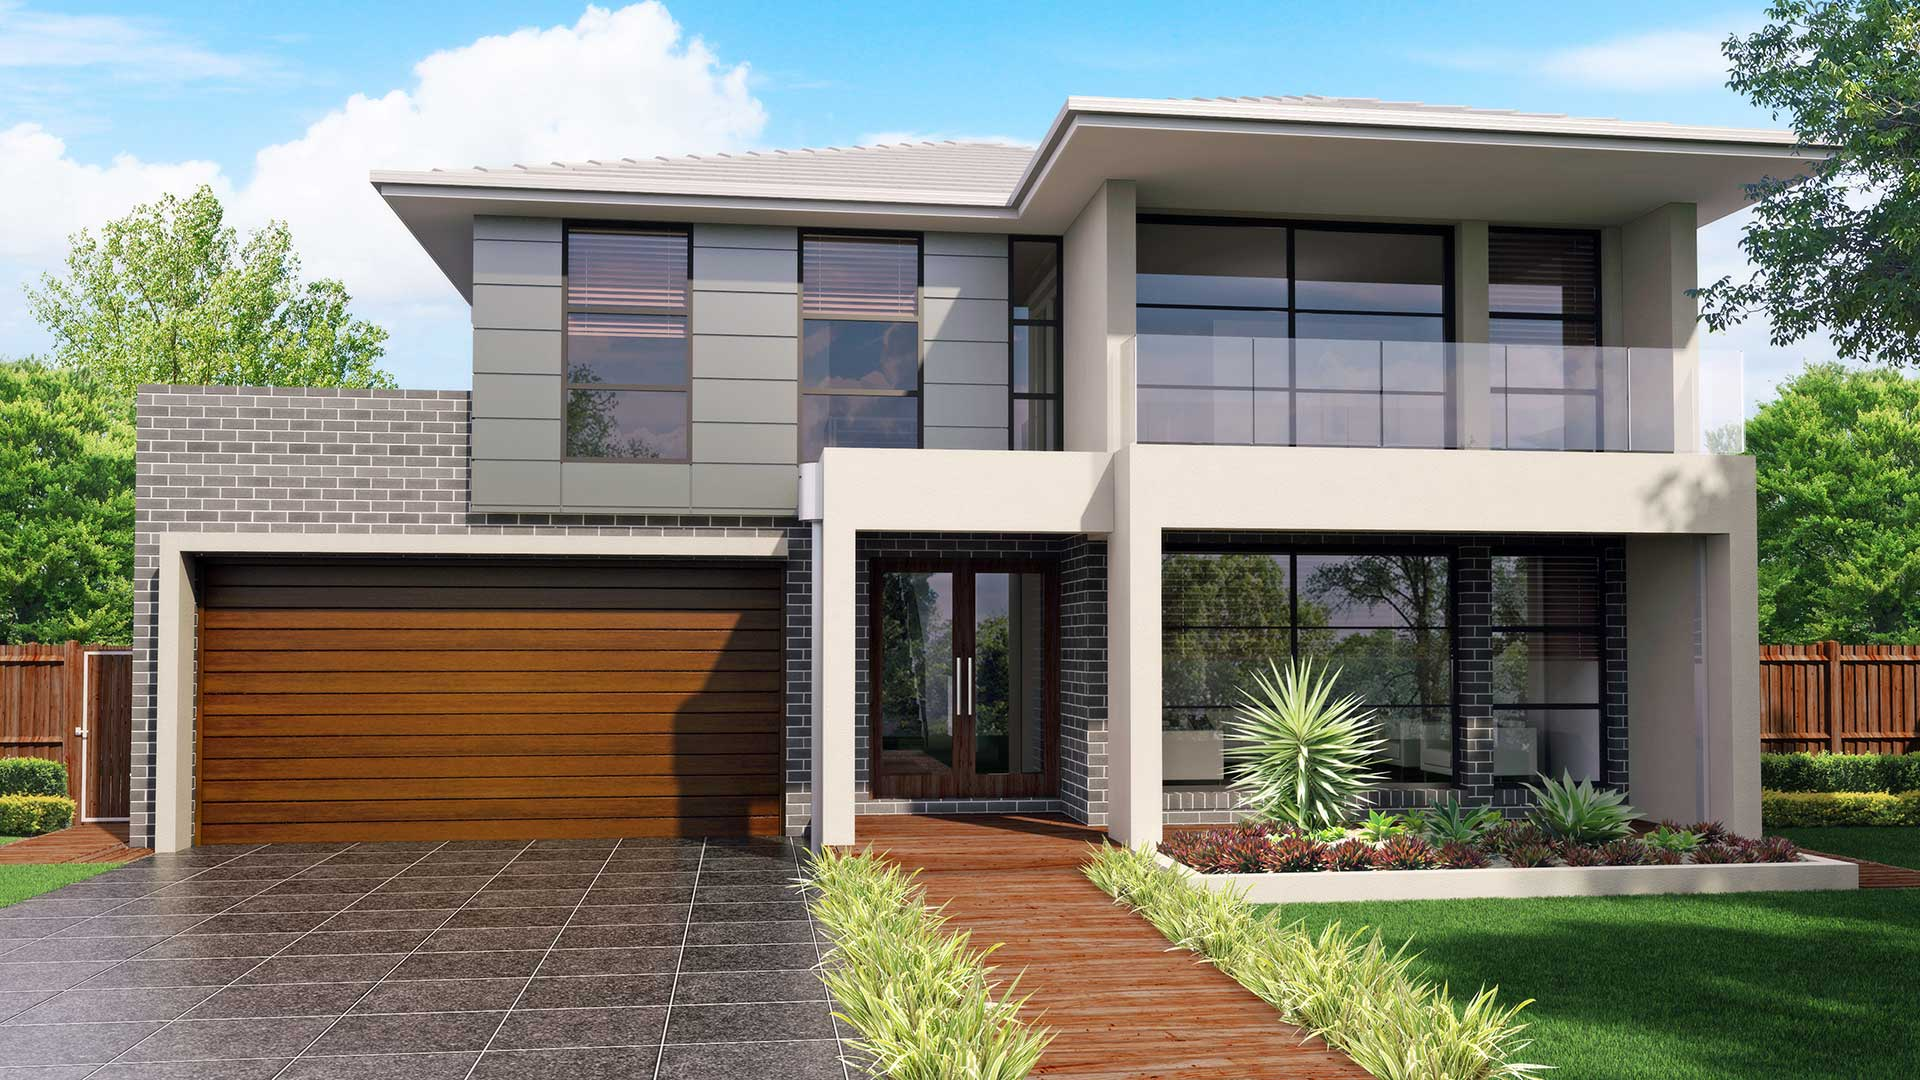 Australis 32, Modern Facade with Balcony - Jandson Homes